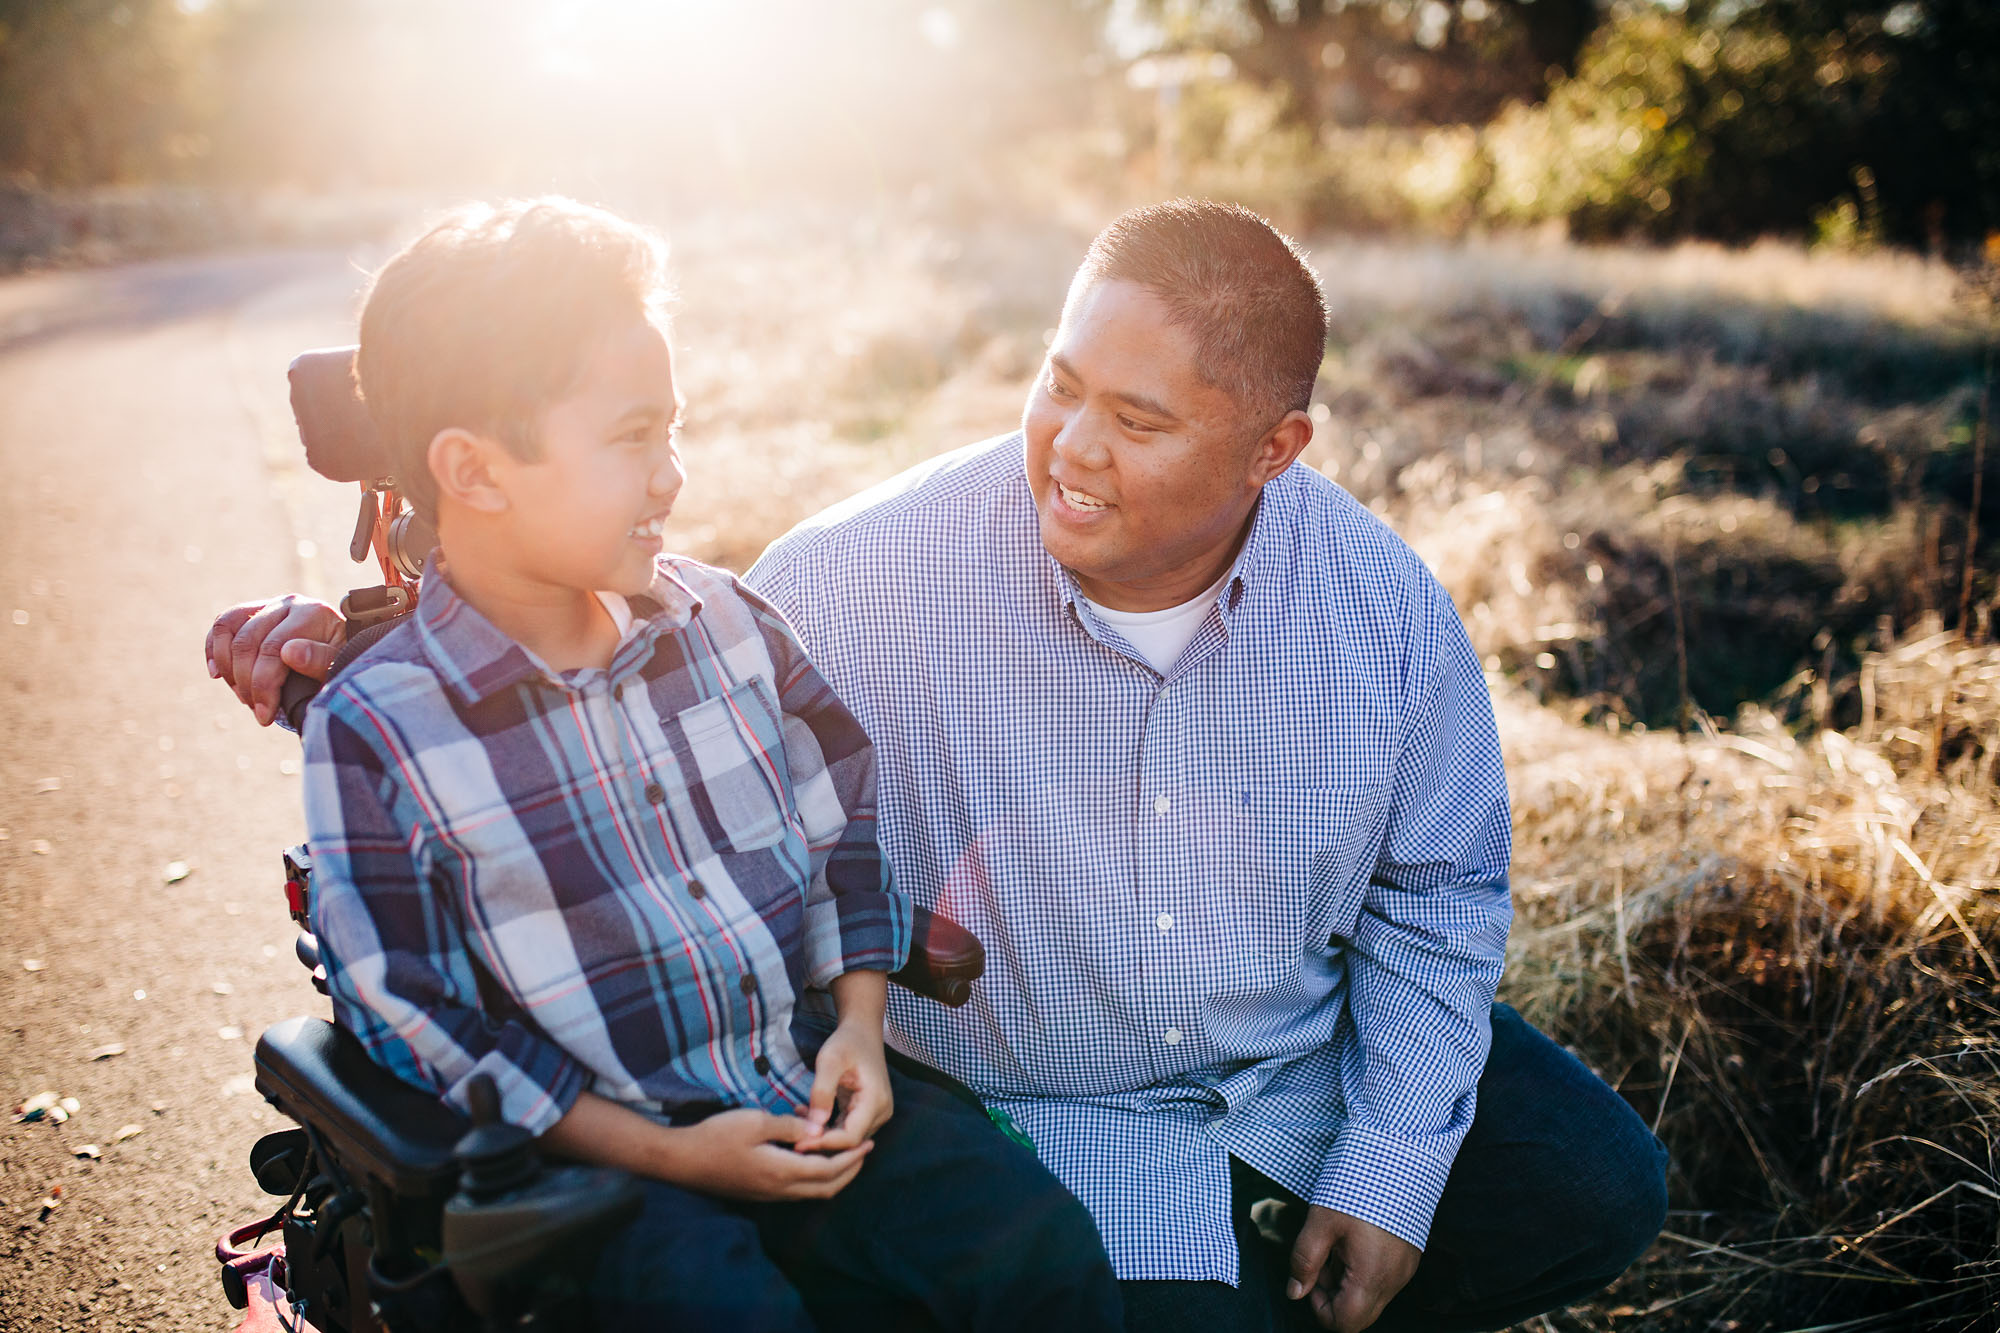 A father and son lovingly look at each other during a family photo session with Amy Wright Photography in Roseville, California.